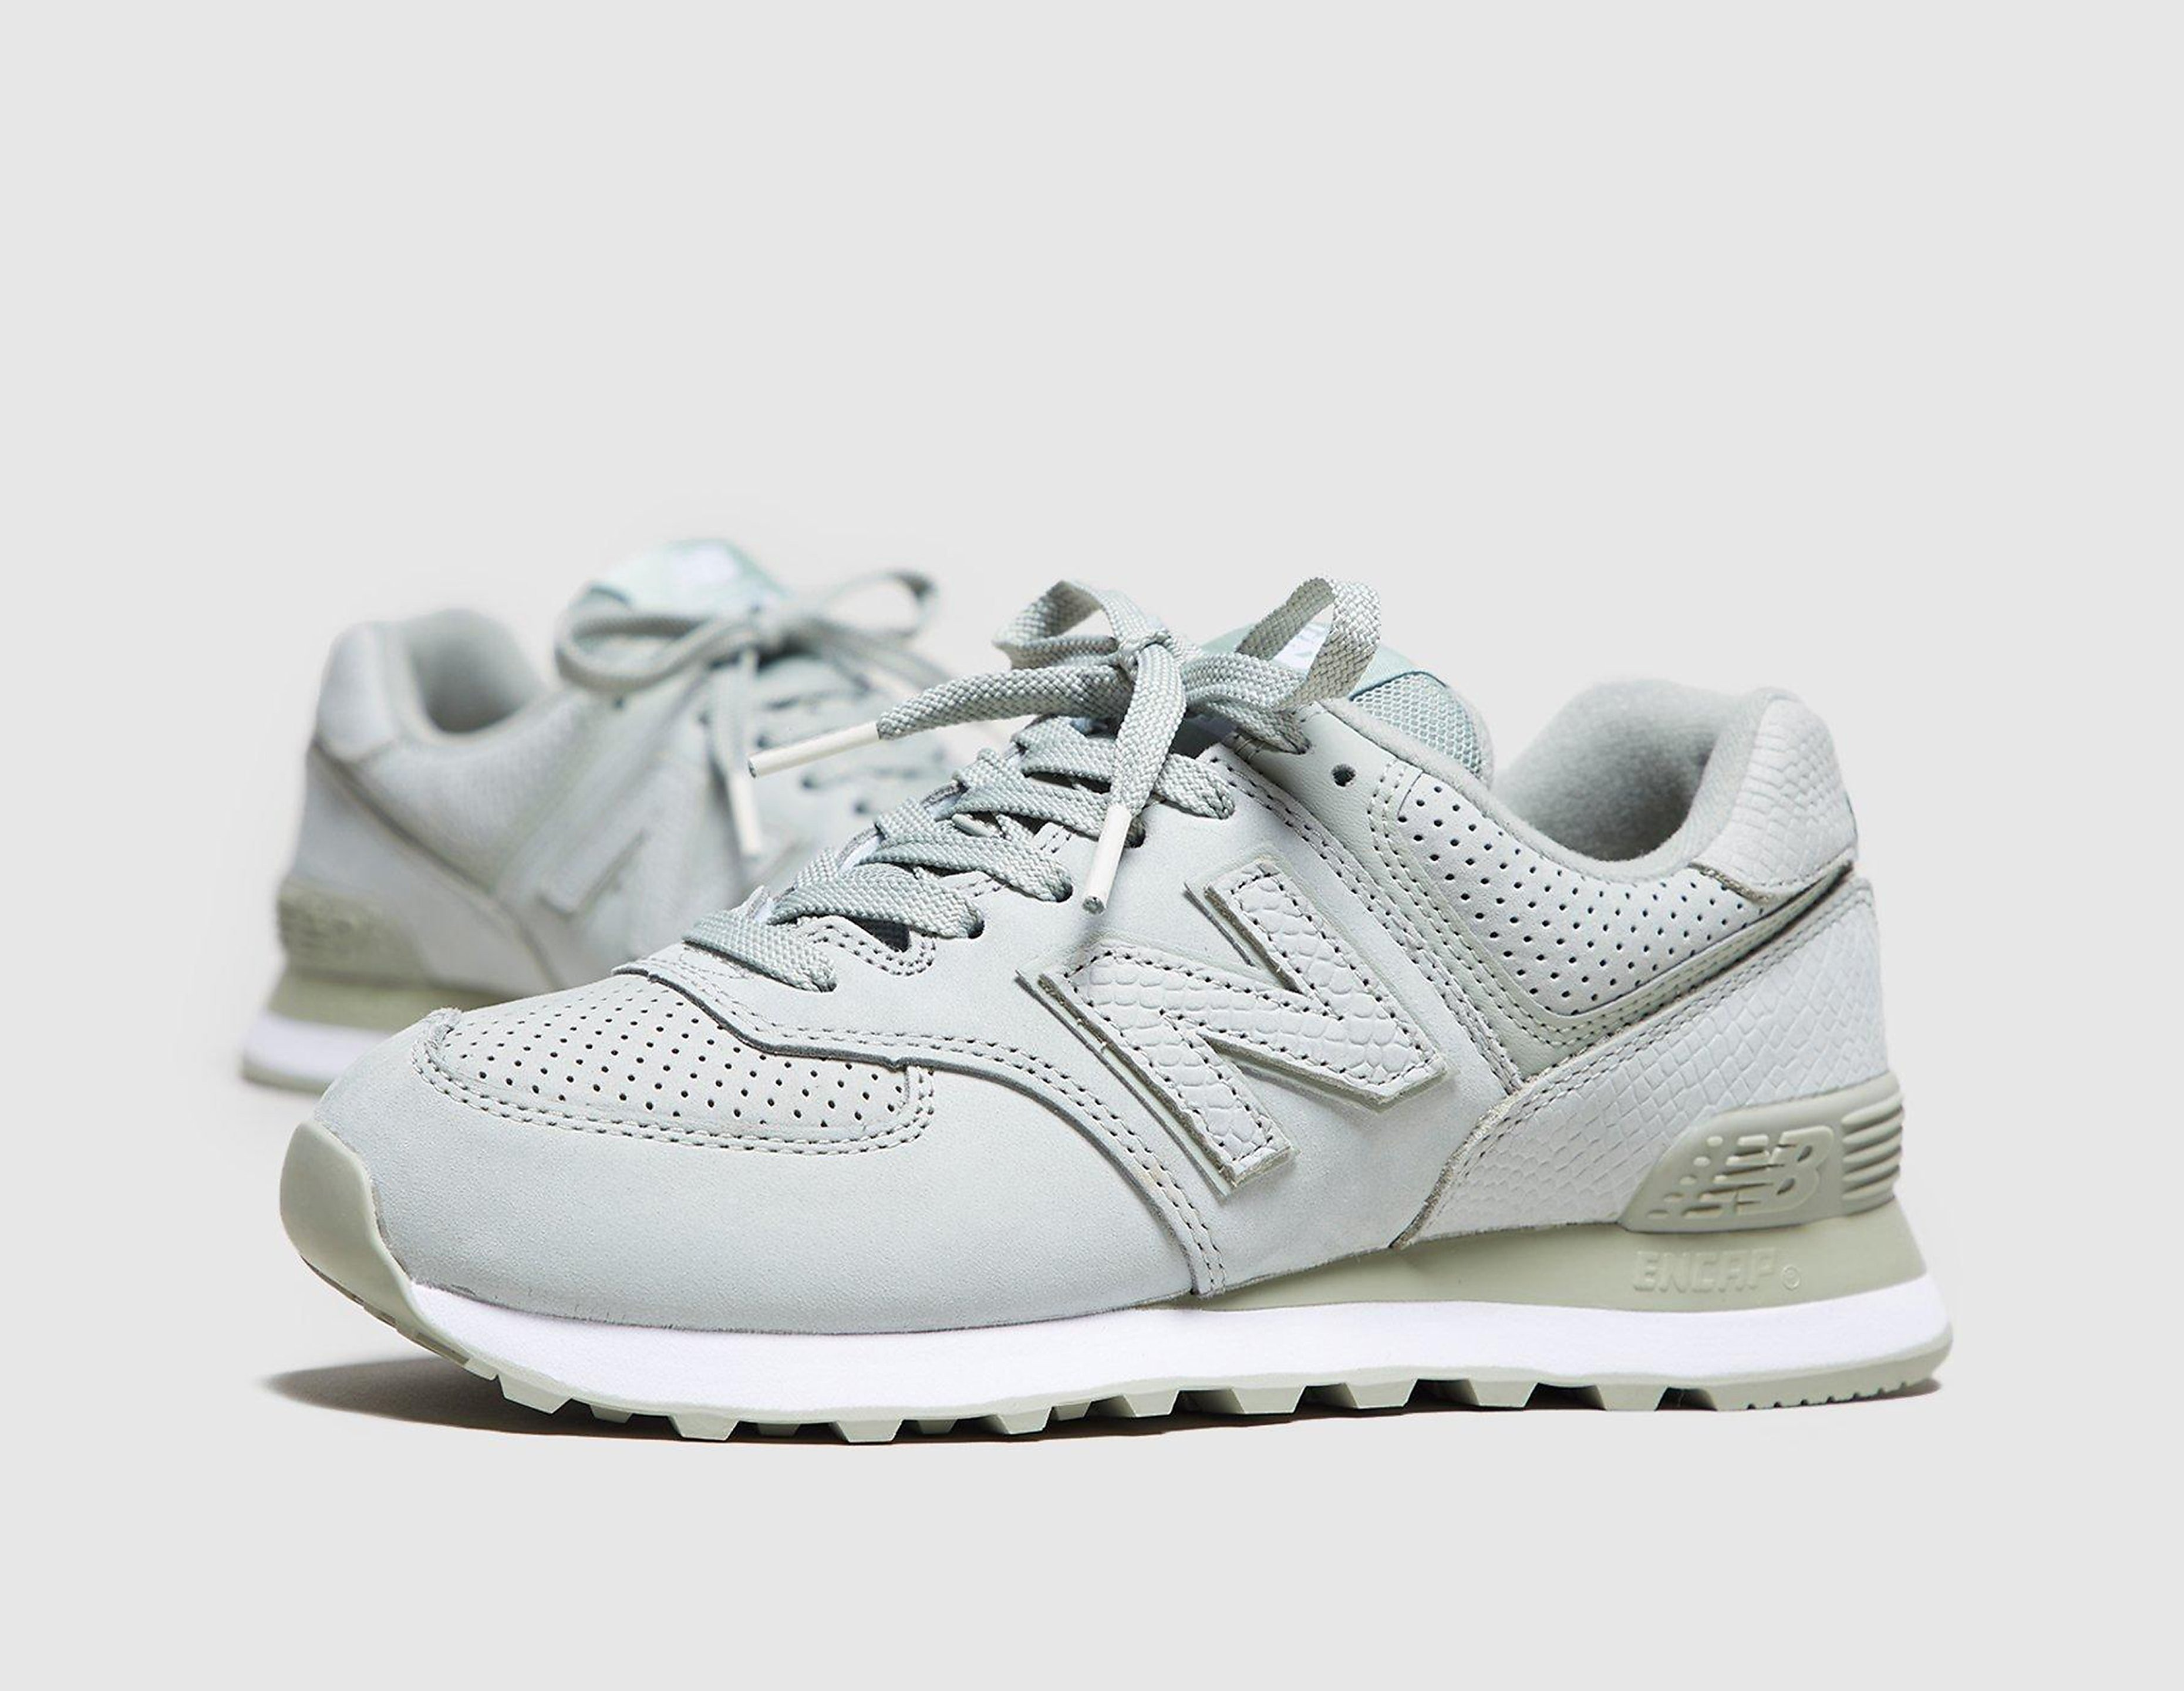 New Balance 574 Serpent Luxe Women's